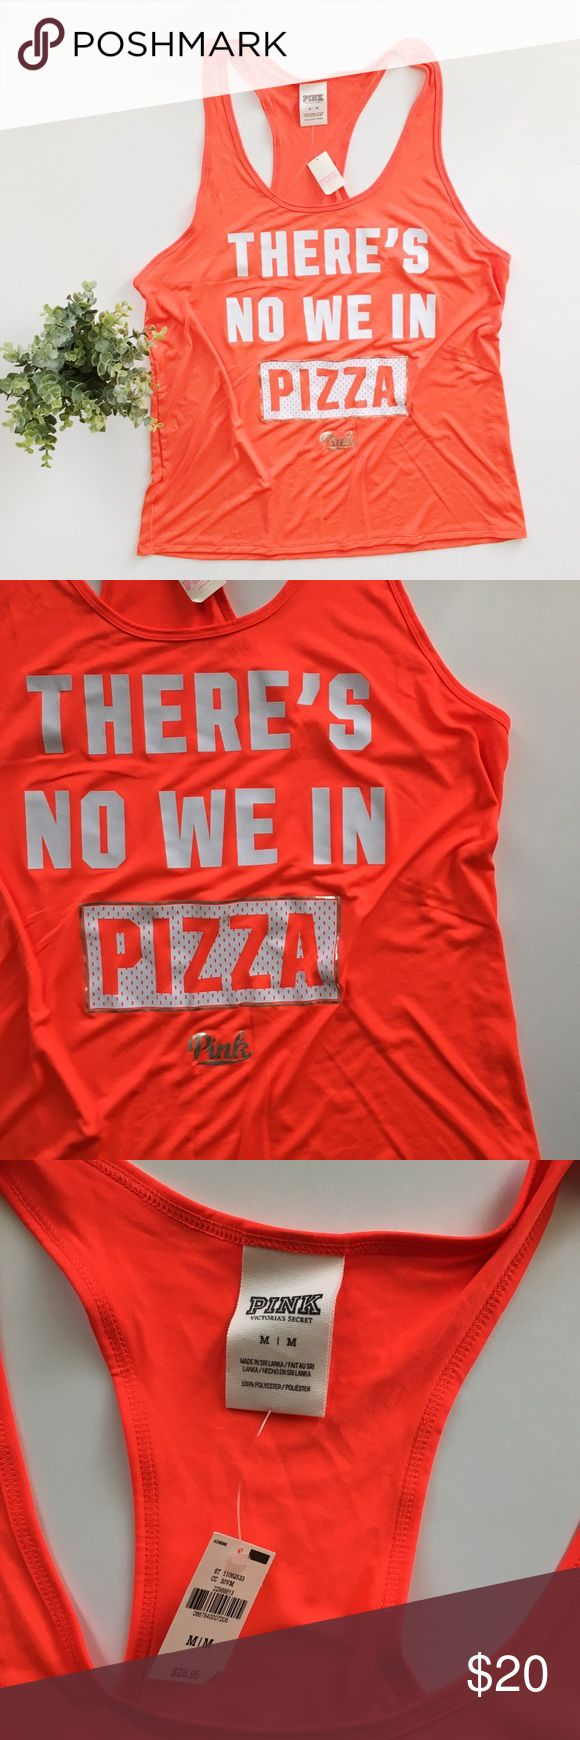 "Victoria's Secret ""There's no we in pizza"" Tank Victoria's Secret ""There's no we in pizza"" extreme racerback tank size medium.  • 27"" Long, 20"" bust • No stains or holes, smoke and pet free home! Offers welcomed! PINK Victoria's Secret Tops Tank Tops"